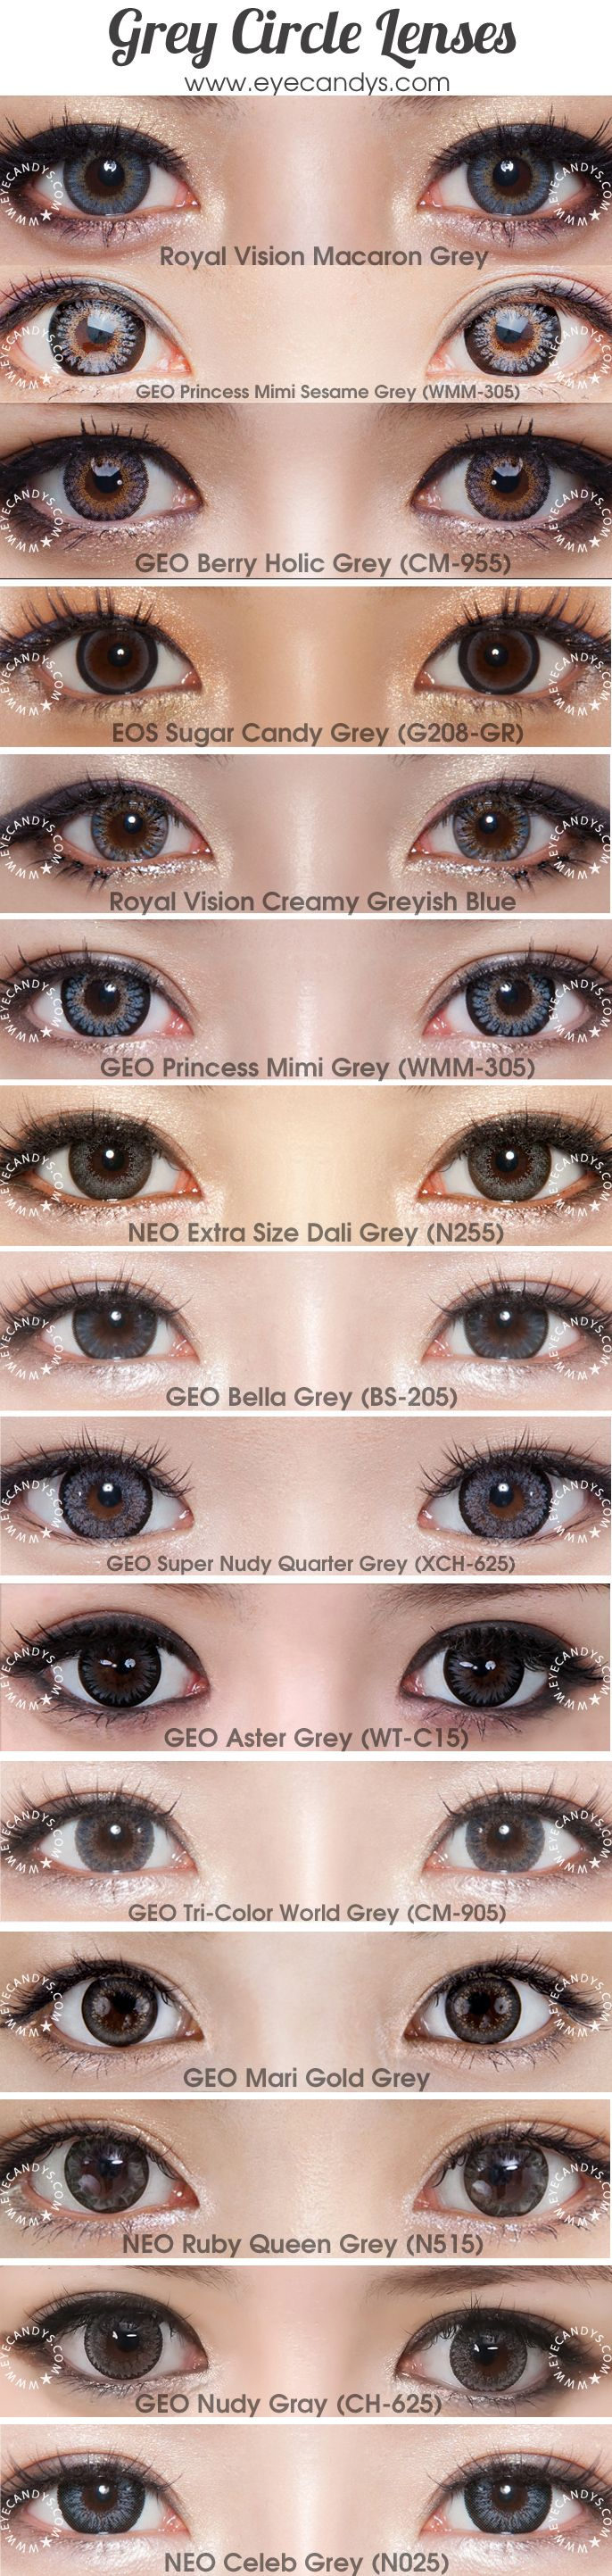 Mysterious smokey gray colored contact lens (cosmetic circle lenses) will give your eyes a glittering effect. Perfect for dolly or sexy looks. Shop authentic circle lenses now with Free Worldwide Delivery! http://www.eyecandys.com/grey/